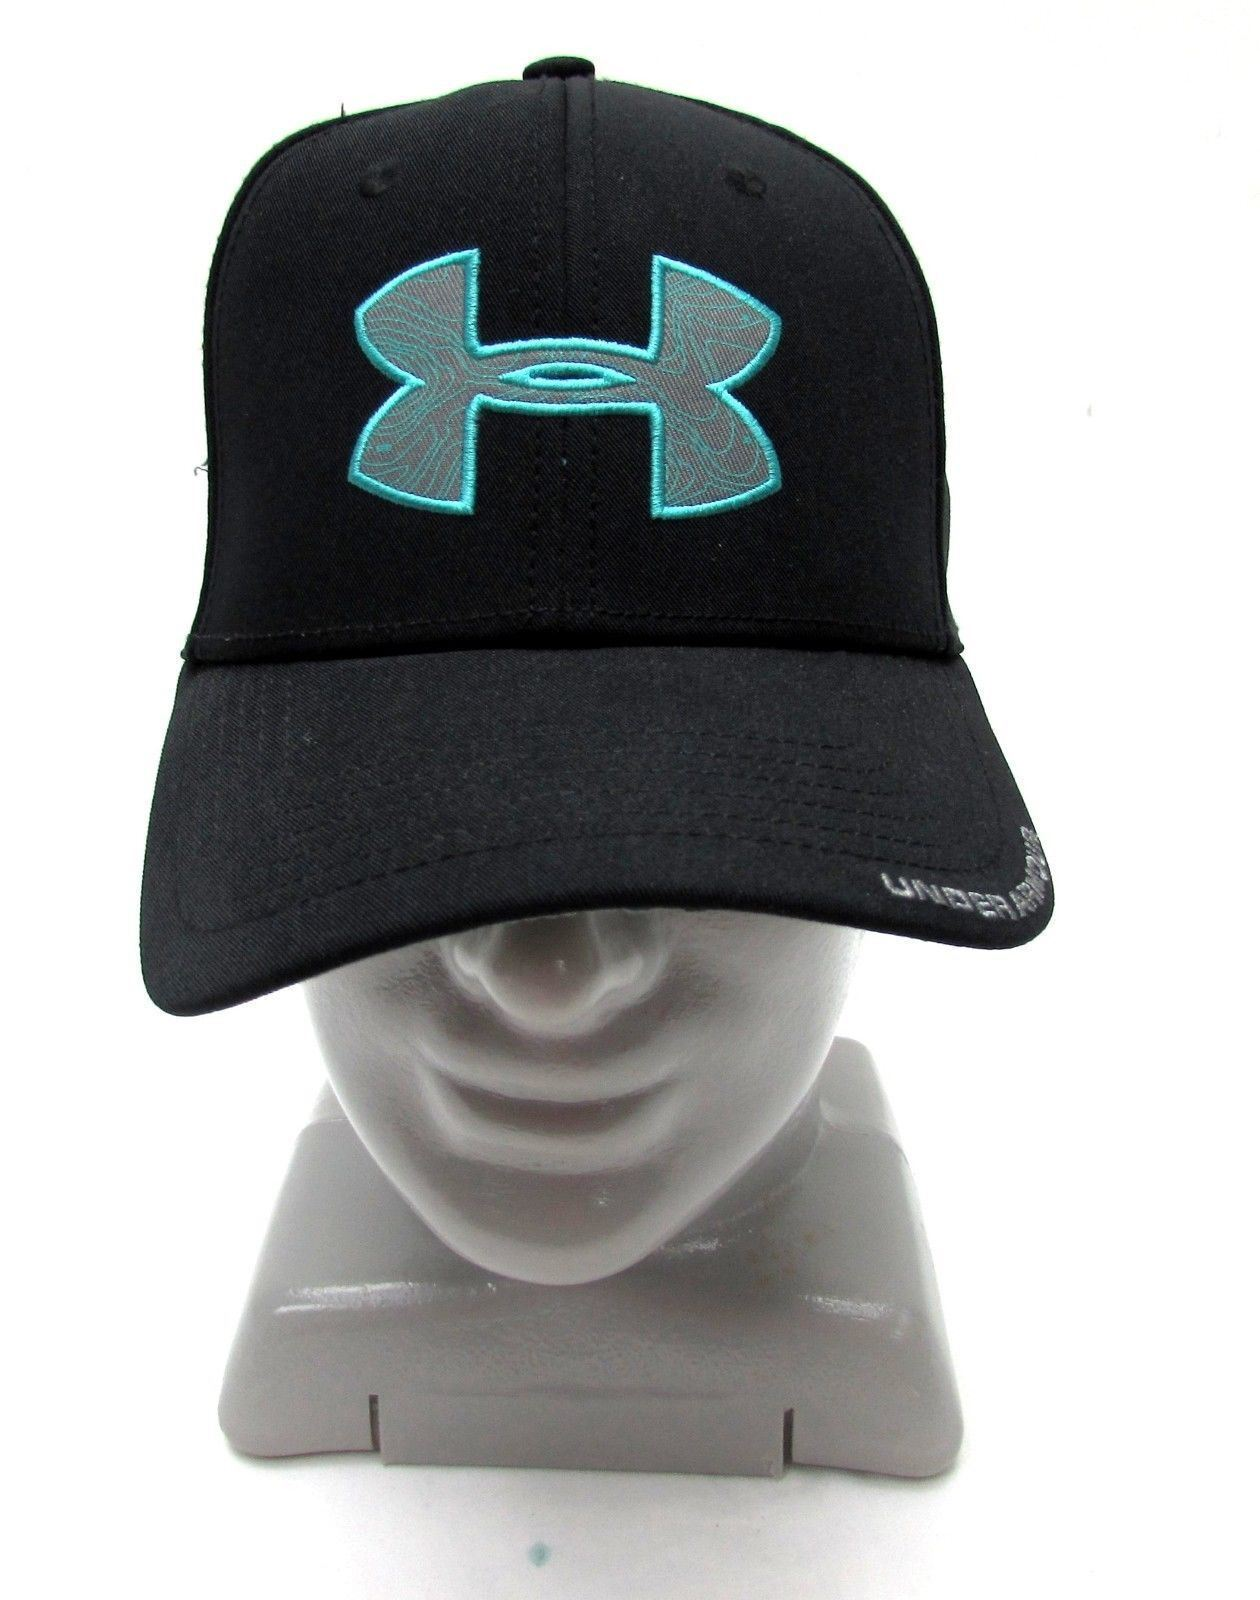 under cap armour mens osfa hat cap under black heat gear e2d9e2